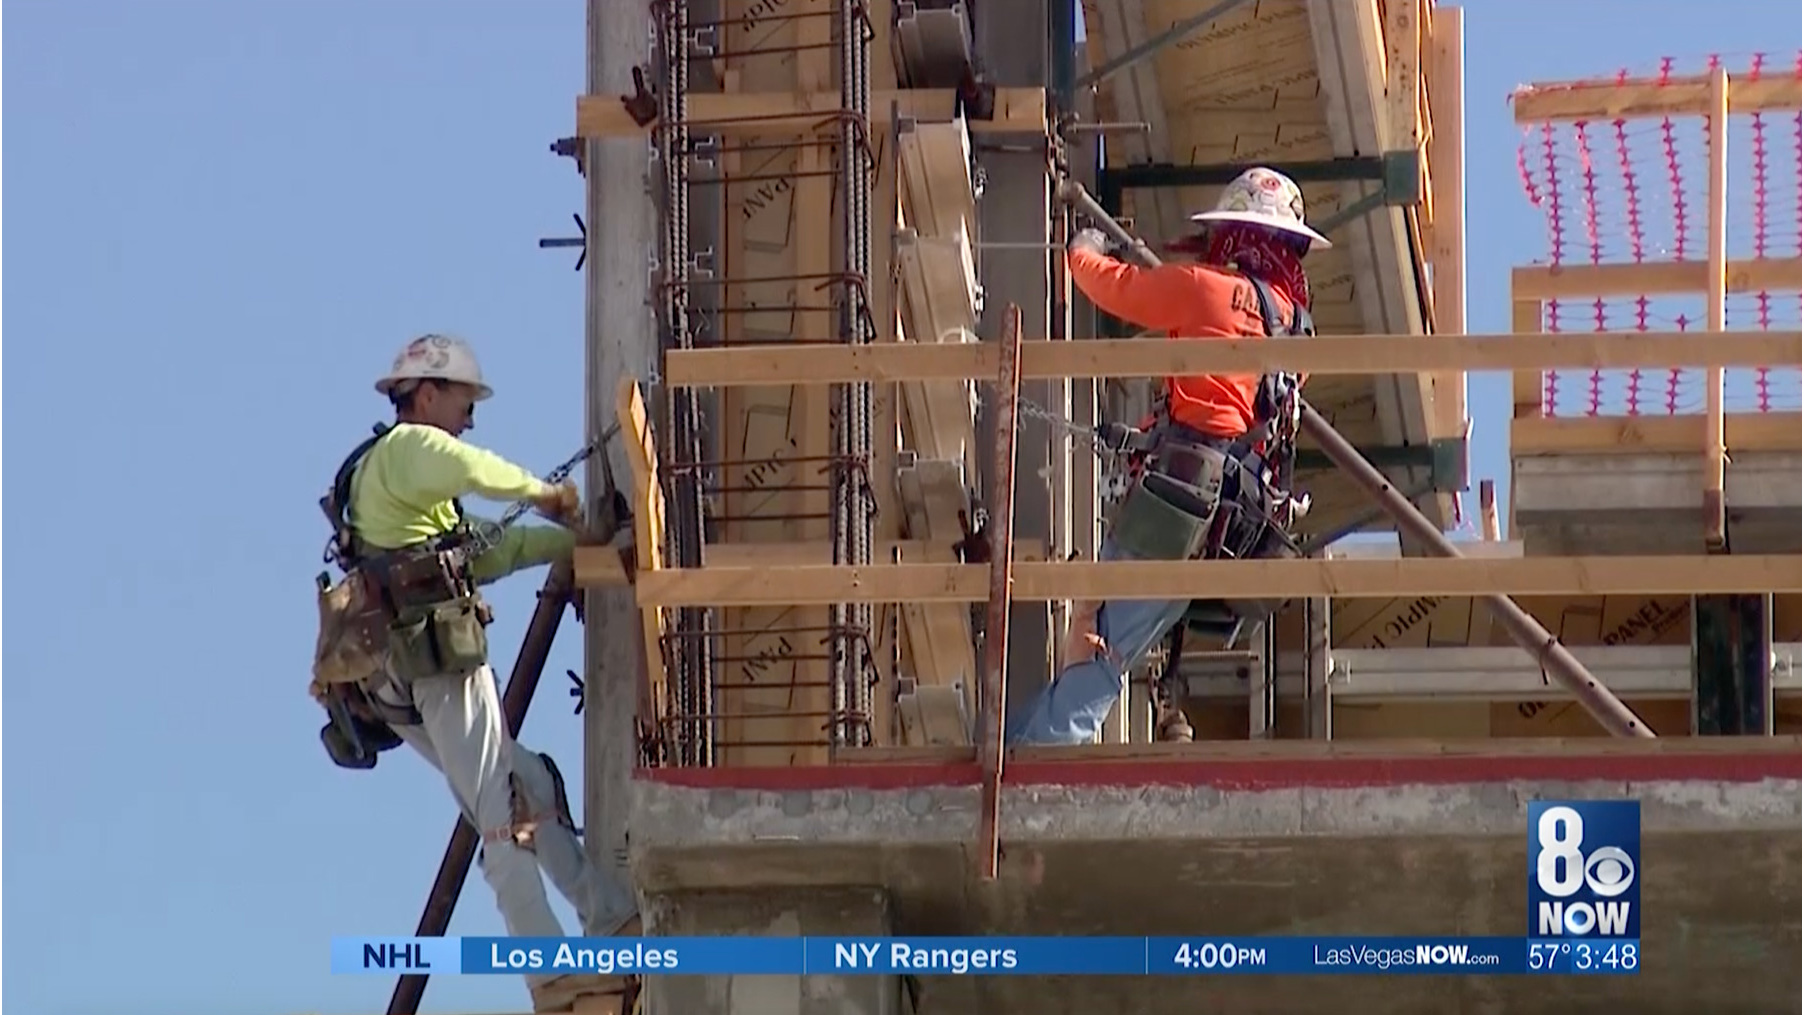 Penta Building Group keeps safety first